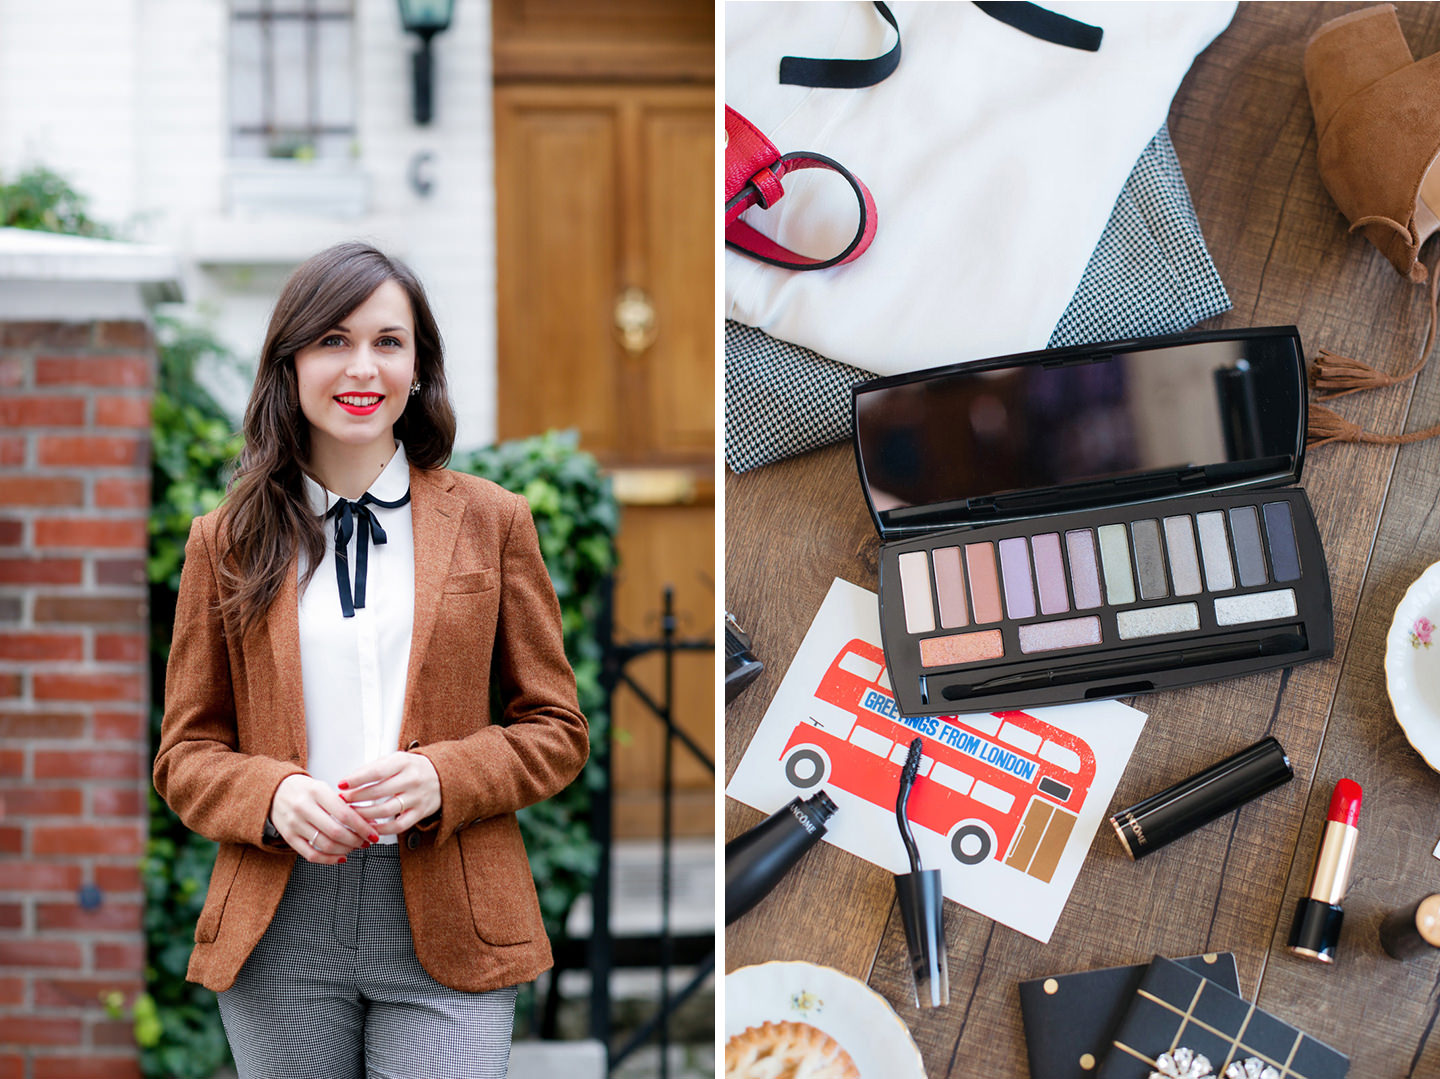 Blog-Mode-And-The-City-Beaute-Lancome-Audacity-London-montage copie